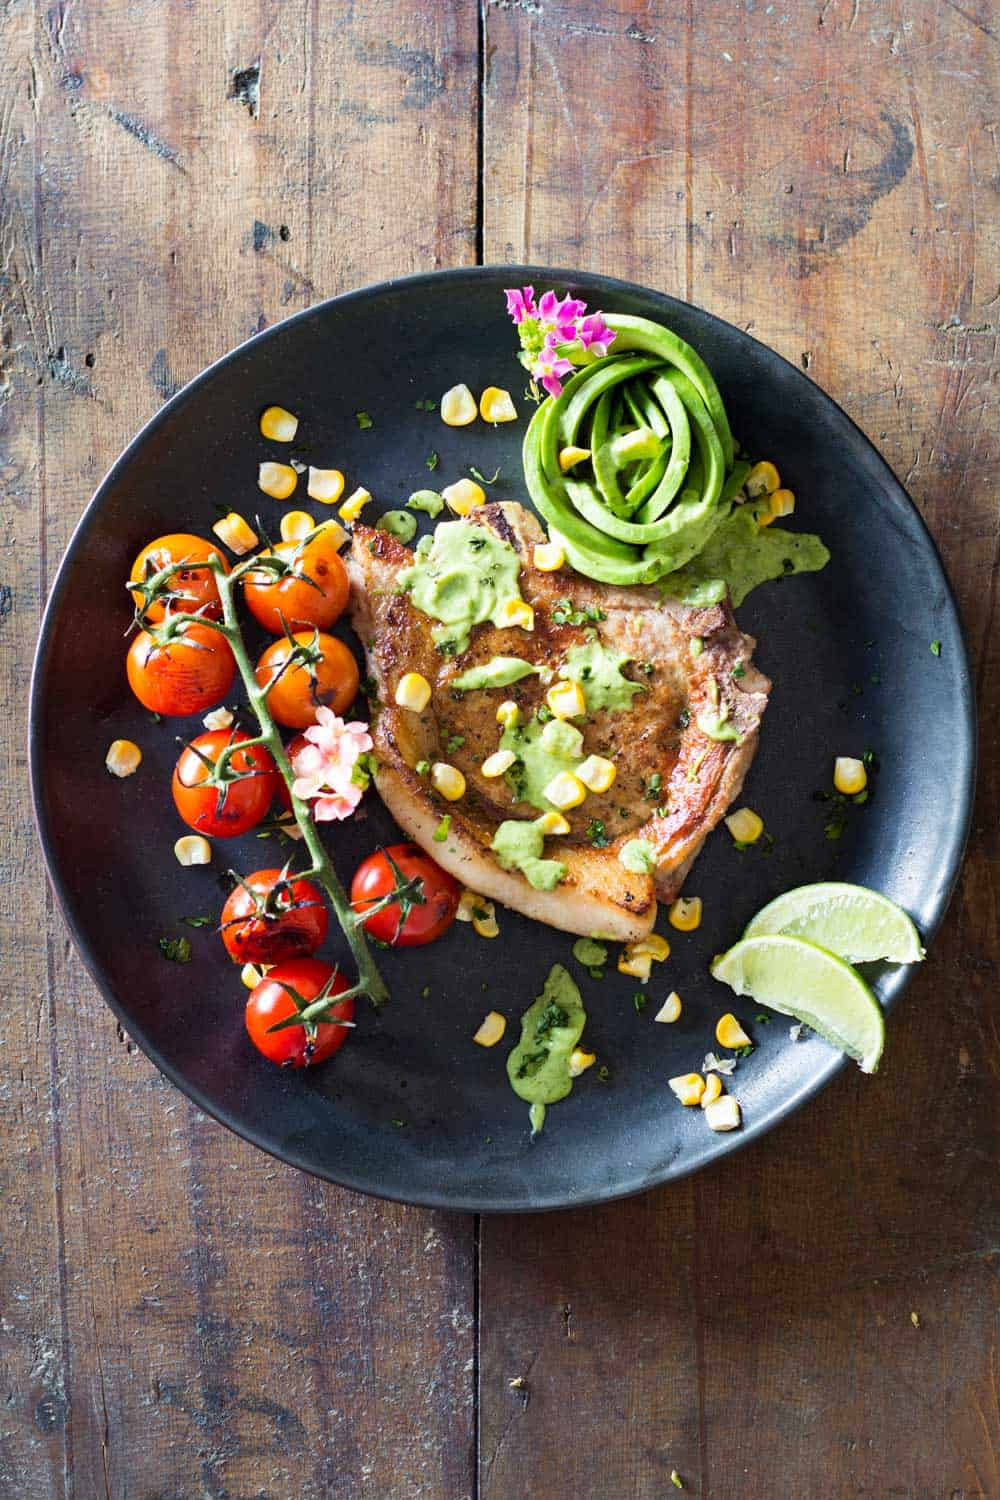 As if Pork Chops alone weren't already finger-lickin' good: these Mexican Pork Chops are one step further! Long live Mexican cuisine!